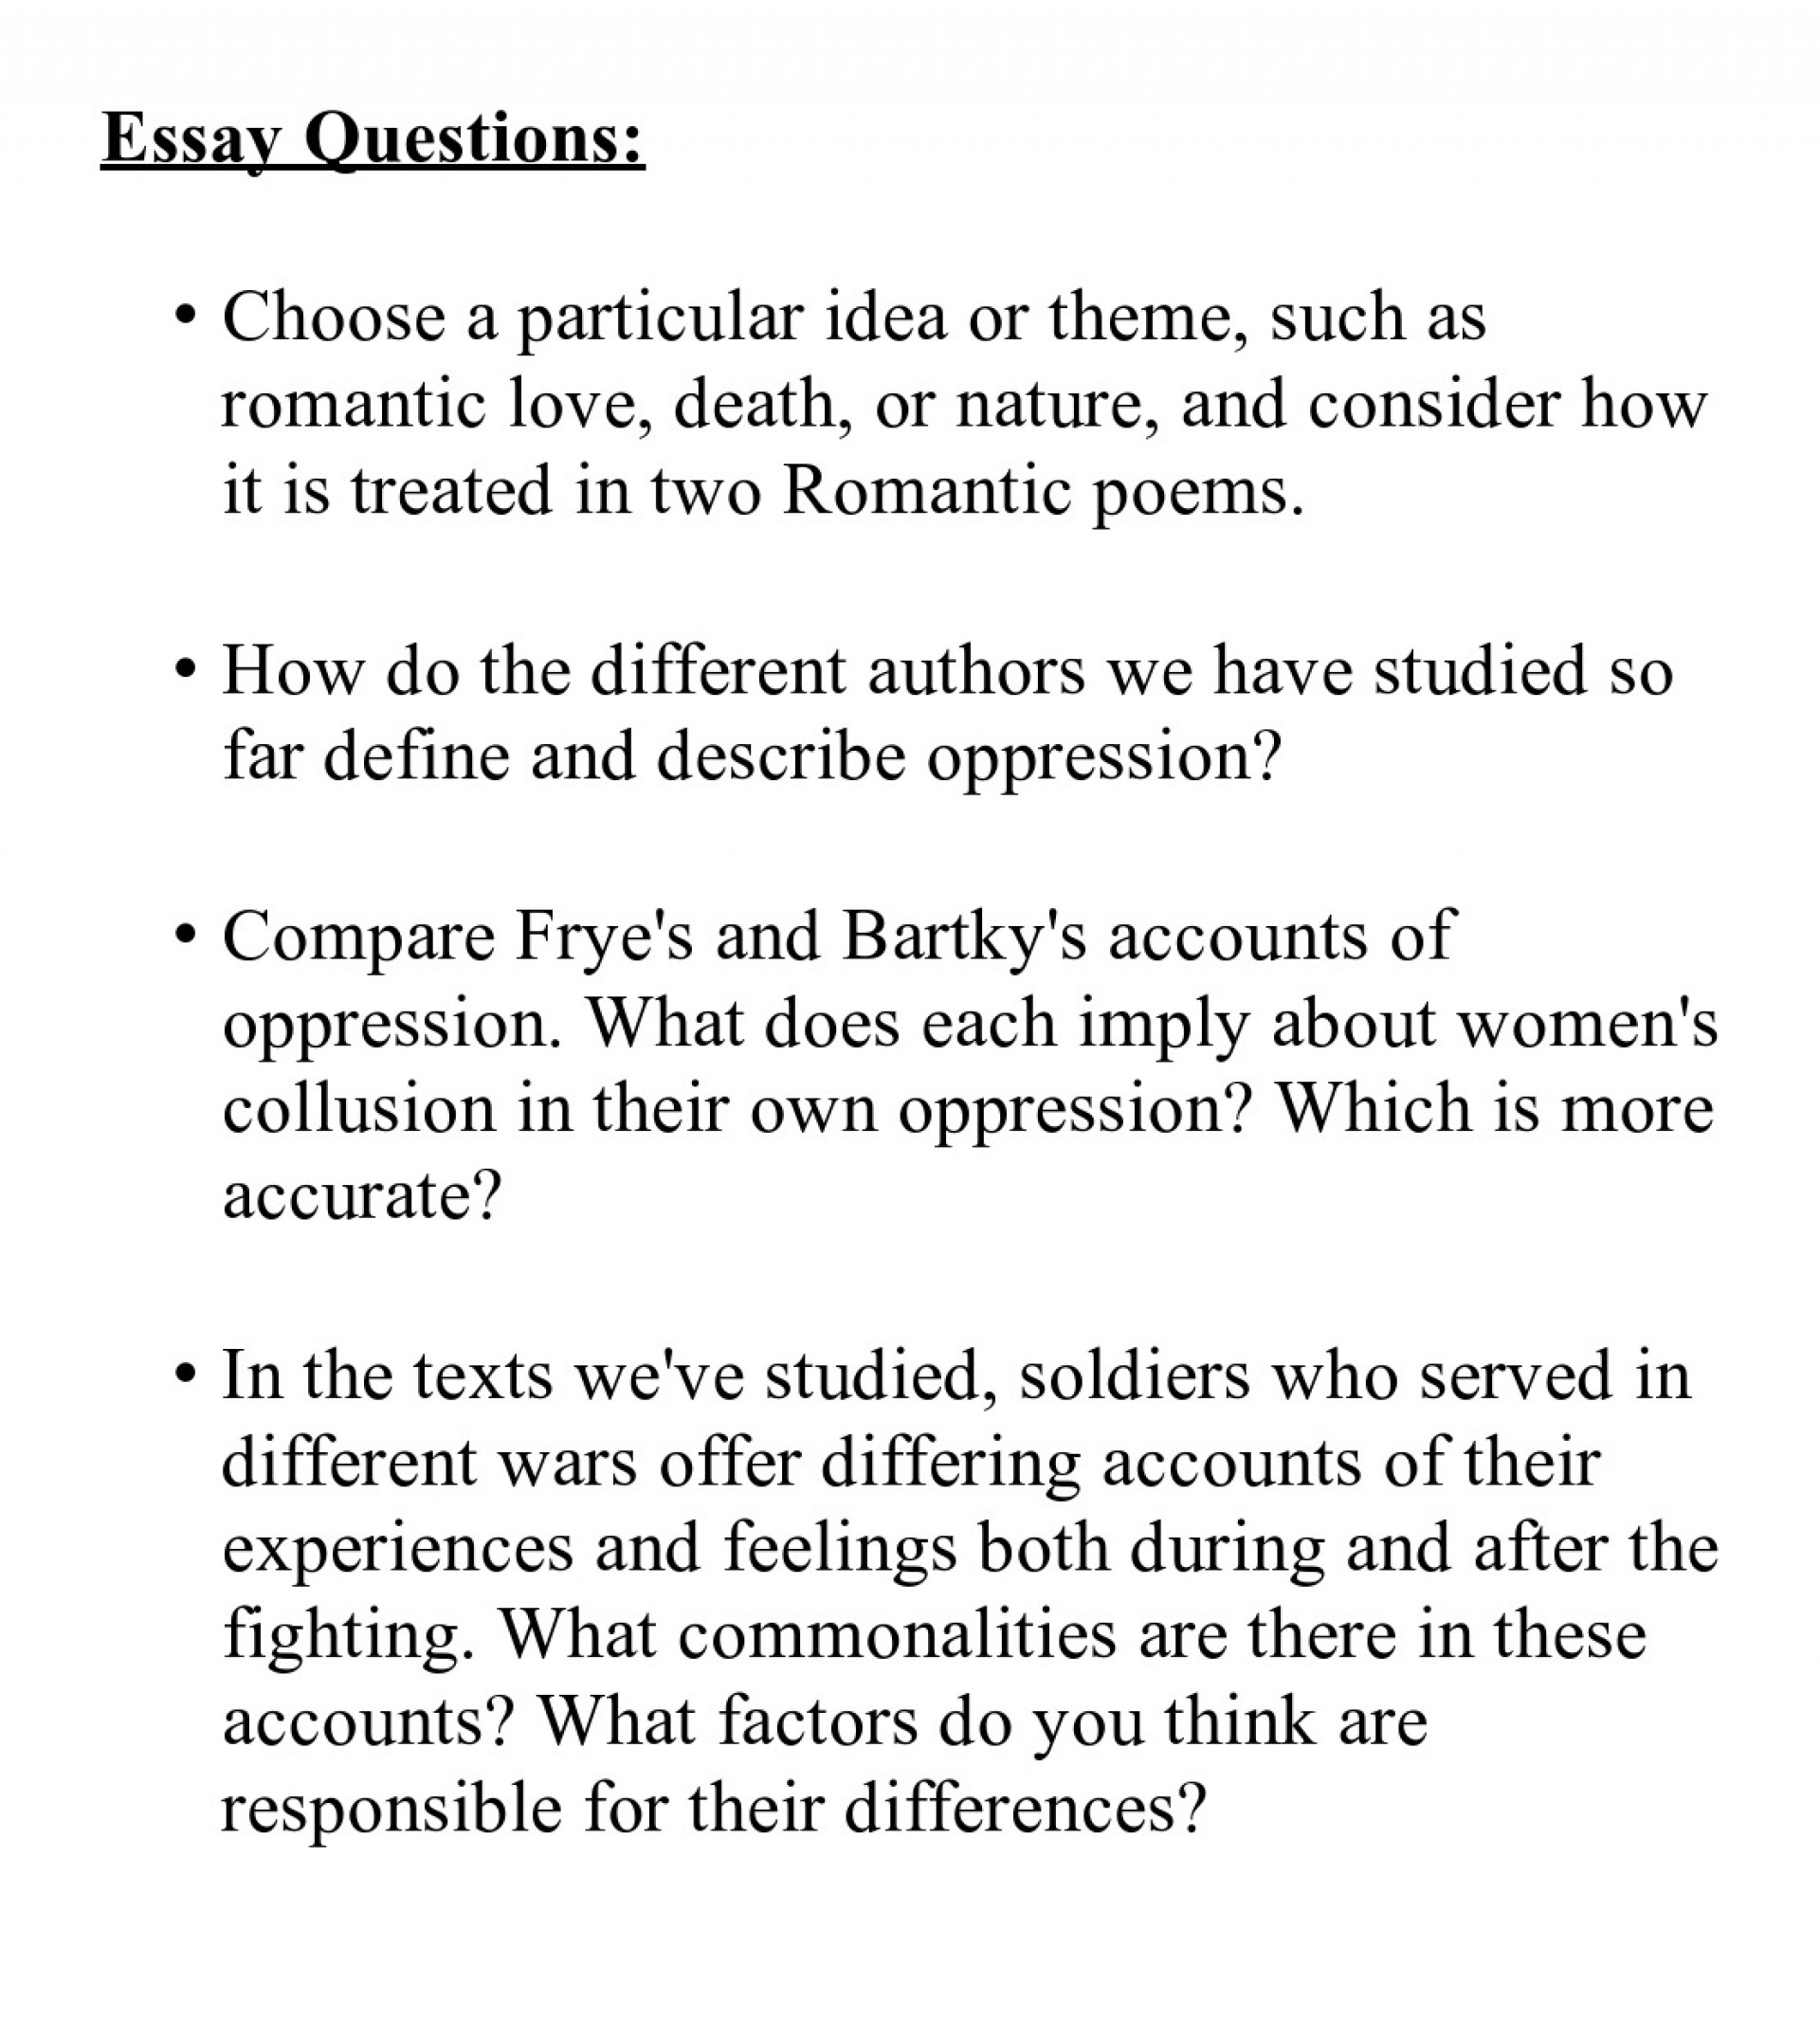 002 Short Essay Topics Example Questions Marvelous In English Composition For Class 9 Icse 2 1920